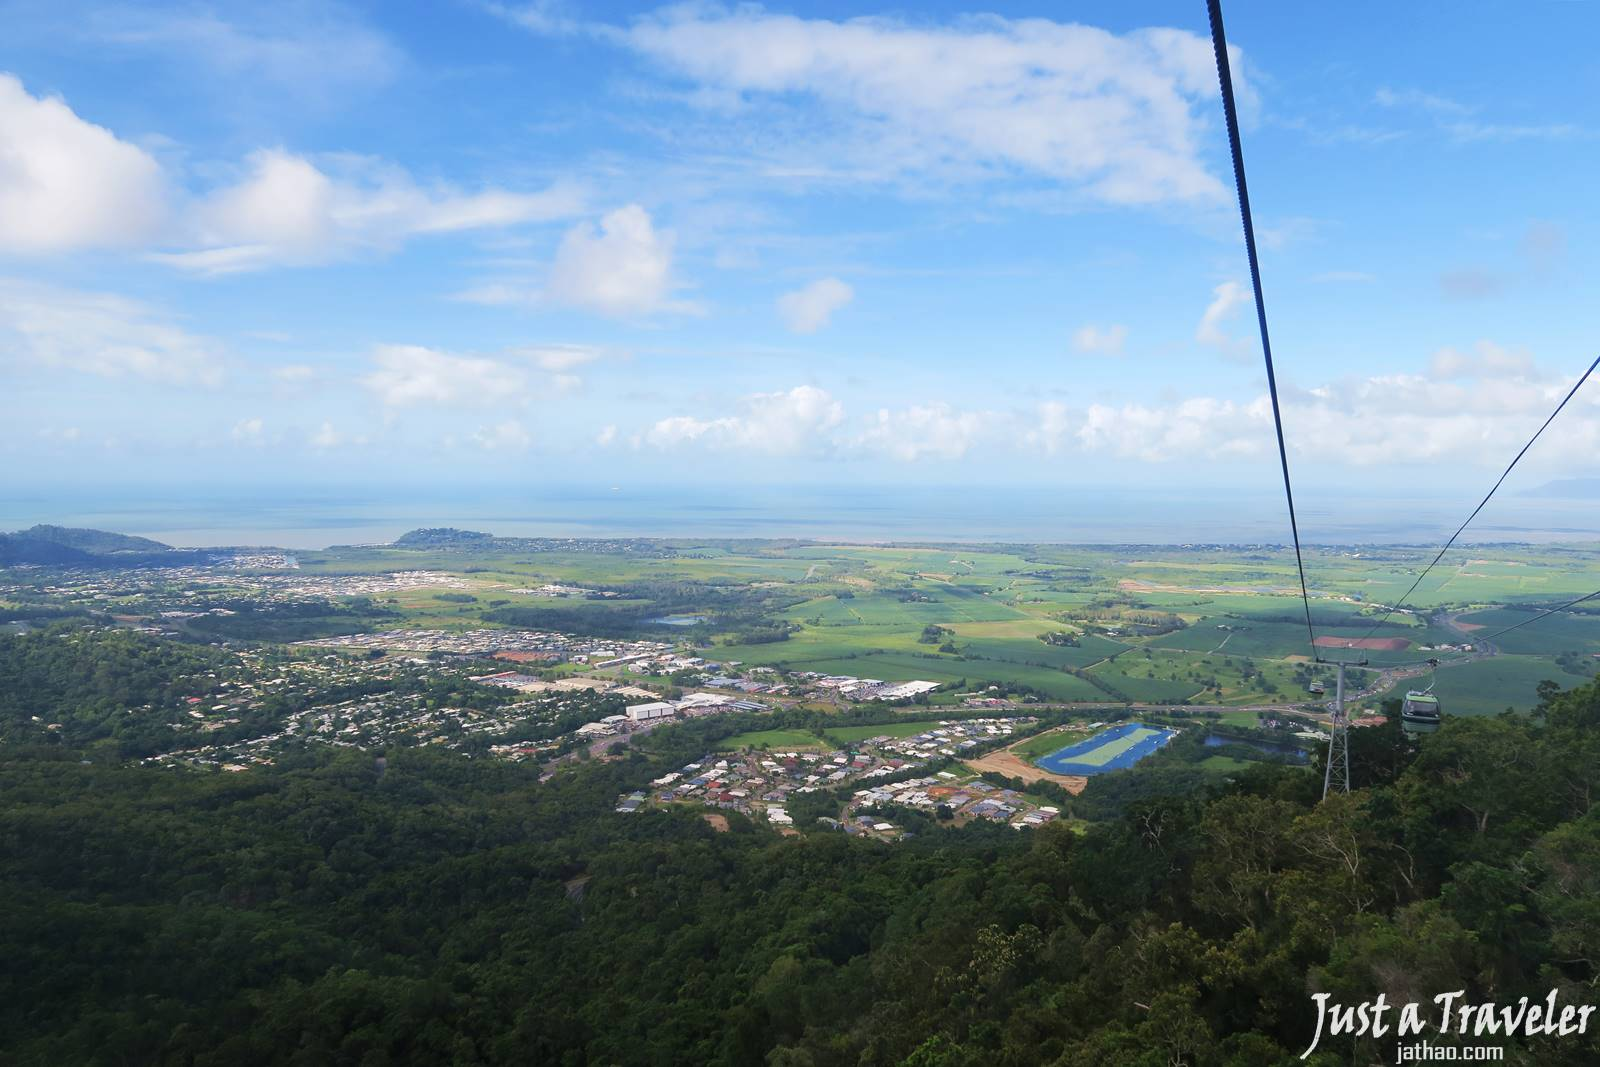 凱恩斯-庫蘭達-交通-觀光纜車-大堡礁-自由行-旅遊-澳洲-Cairns-Kuranda-Skyrail-Rainforest-Cableway-Travel-Tourist-Attraction-Australia